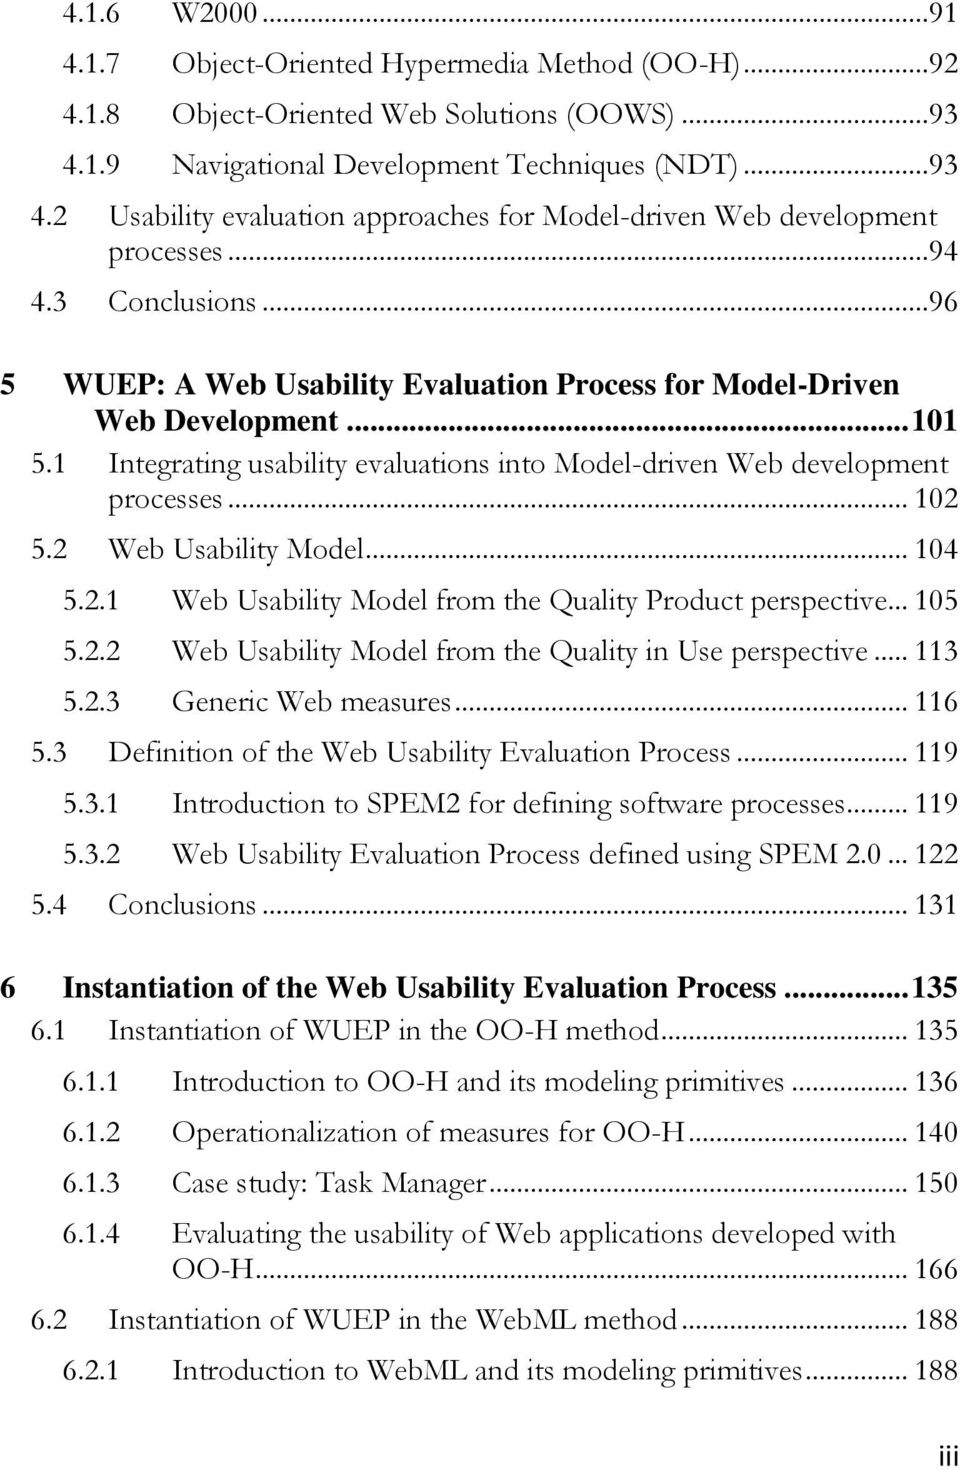 2 Web Usability Model... 104 5.2.1 Web Usability Model from the Quality Product perspective... 105 5.2.2 Web Usability Model from the Quality in Use perspective... 113 5.2.3 Generic Web measures.